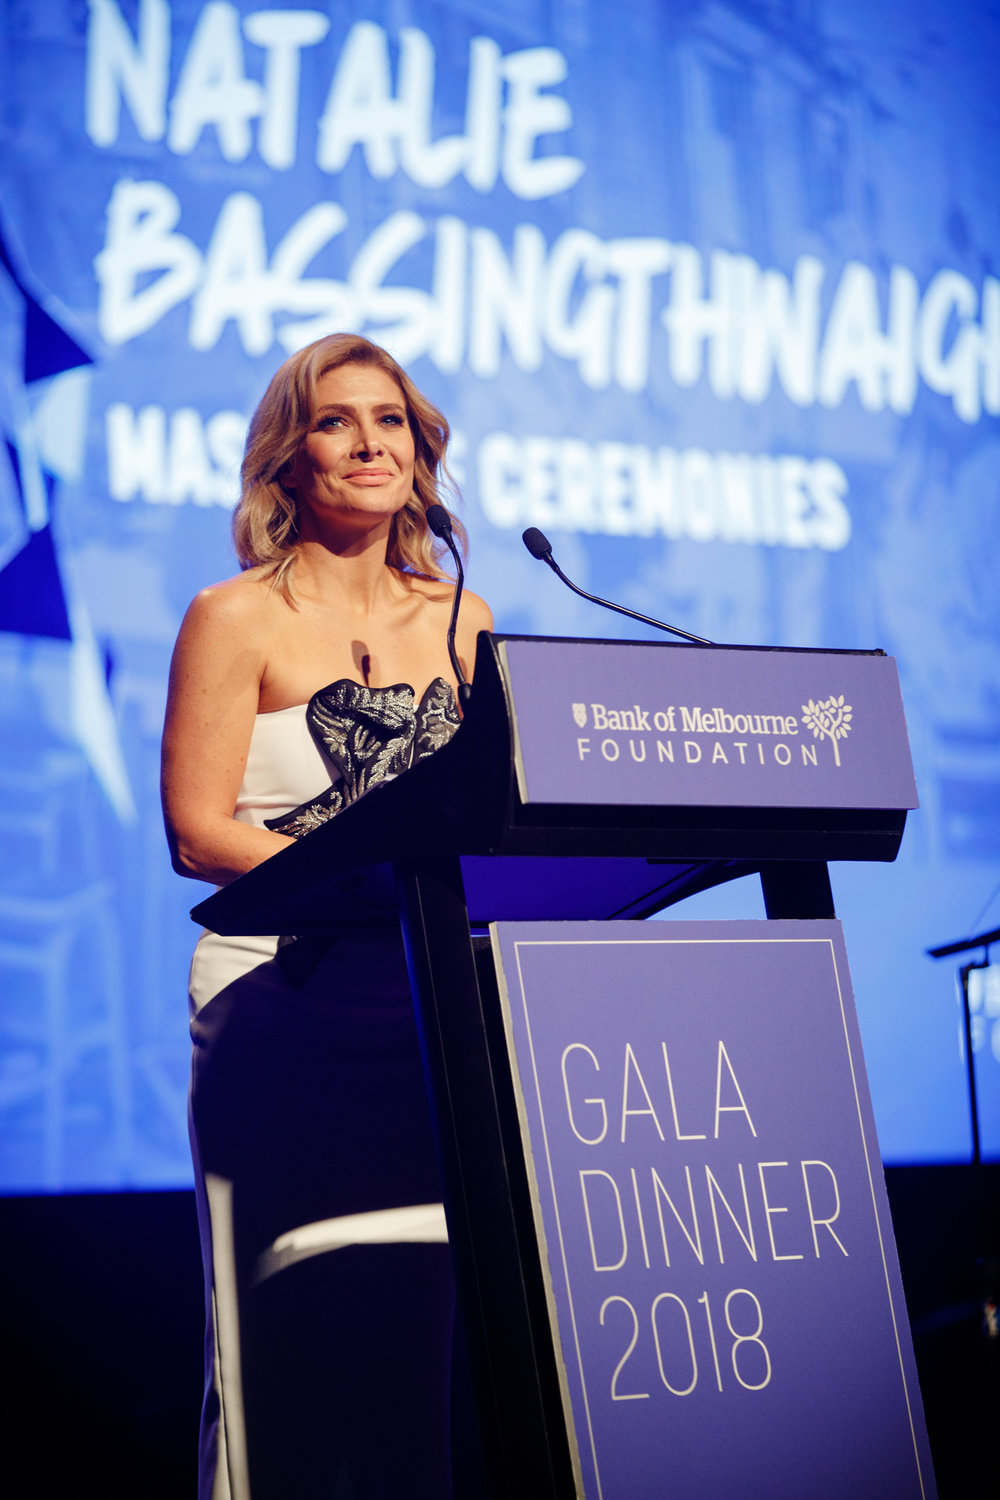 bank of melbourne - Foundation Gala